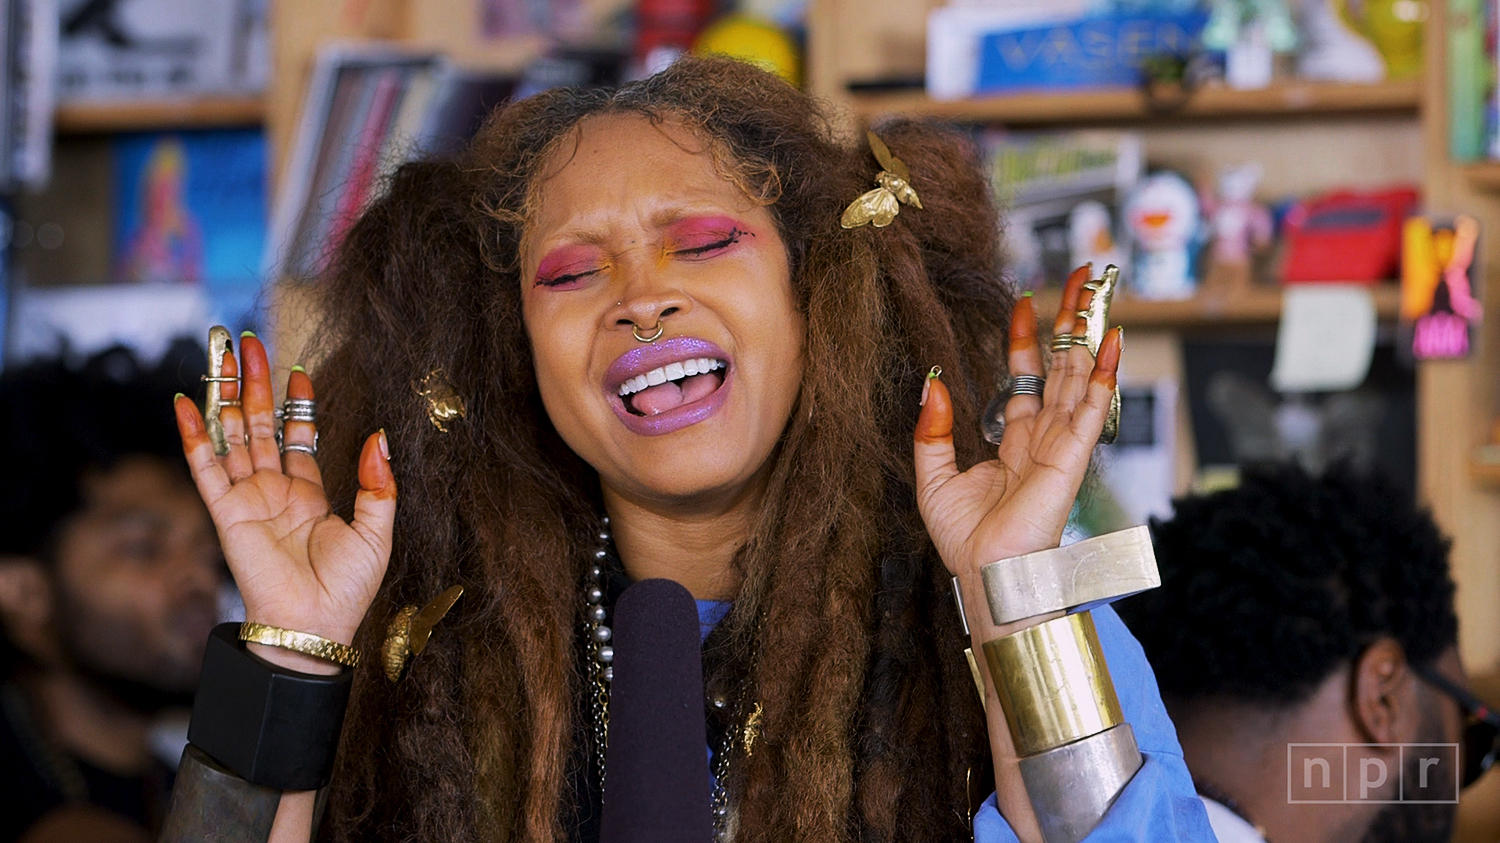 Erykah Badu Responds to Critics About her $2 Quarantine Concert: 'Did You Ask iTunes When You Bought Your Music?'